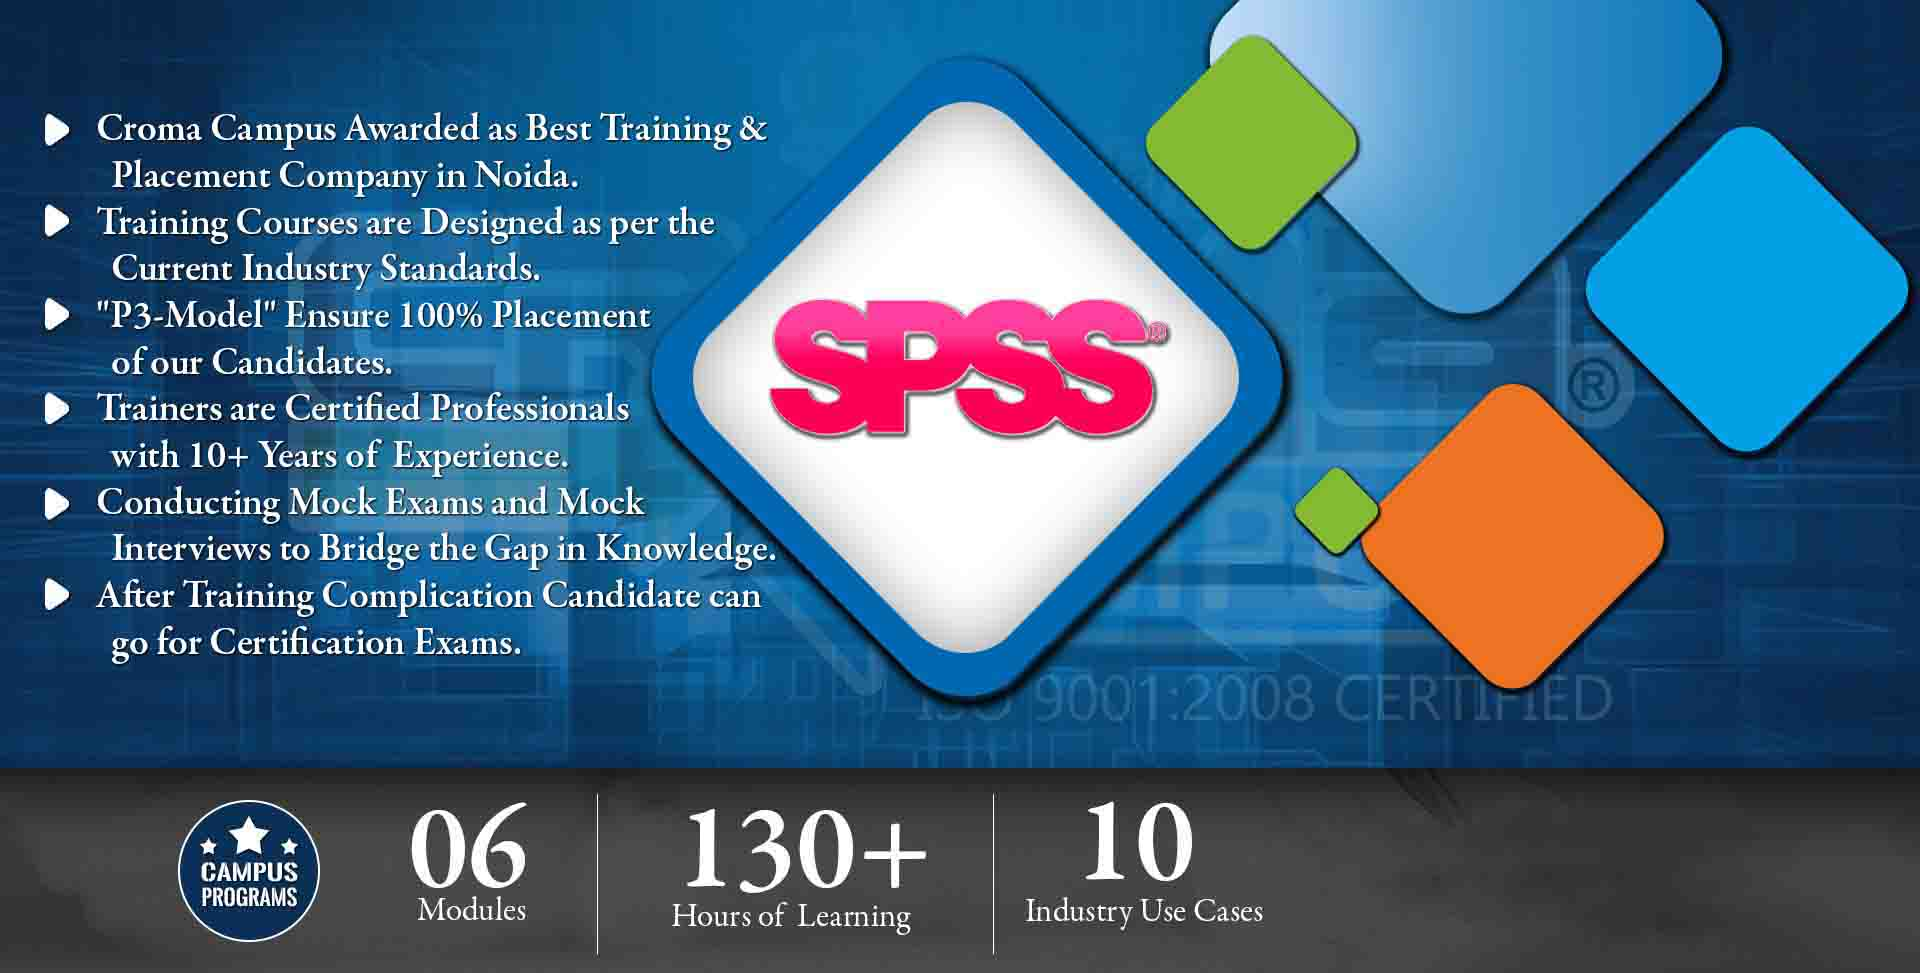 SPSS ONLINE TRAINING IN INDIA | CROMA CAMPUS